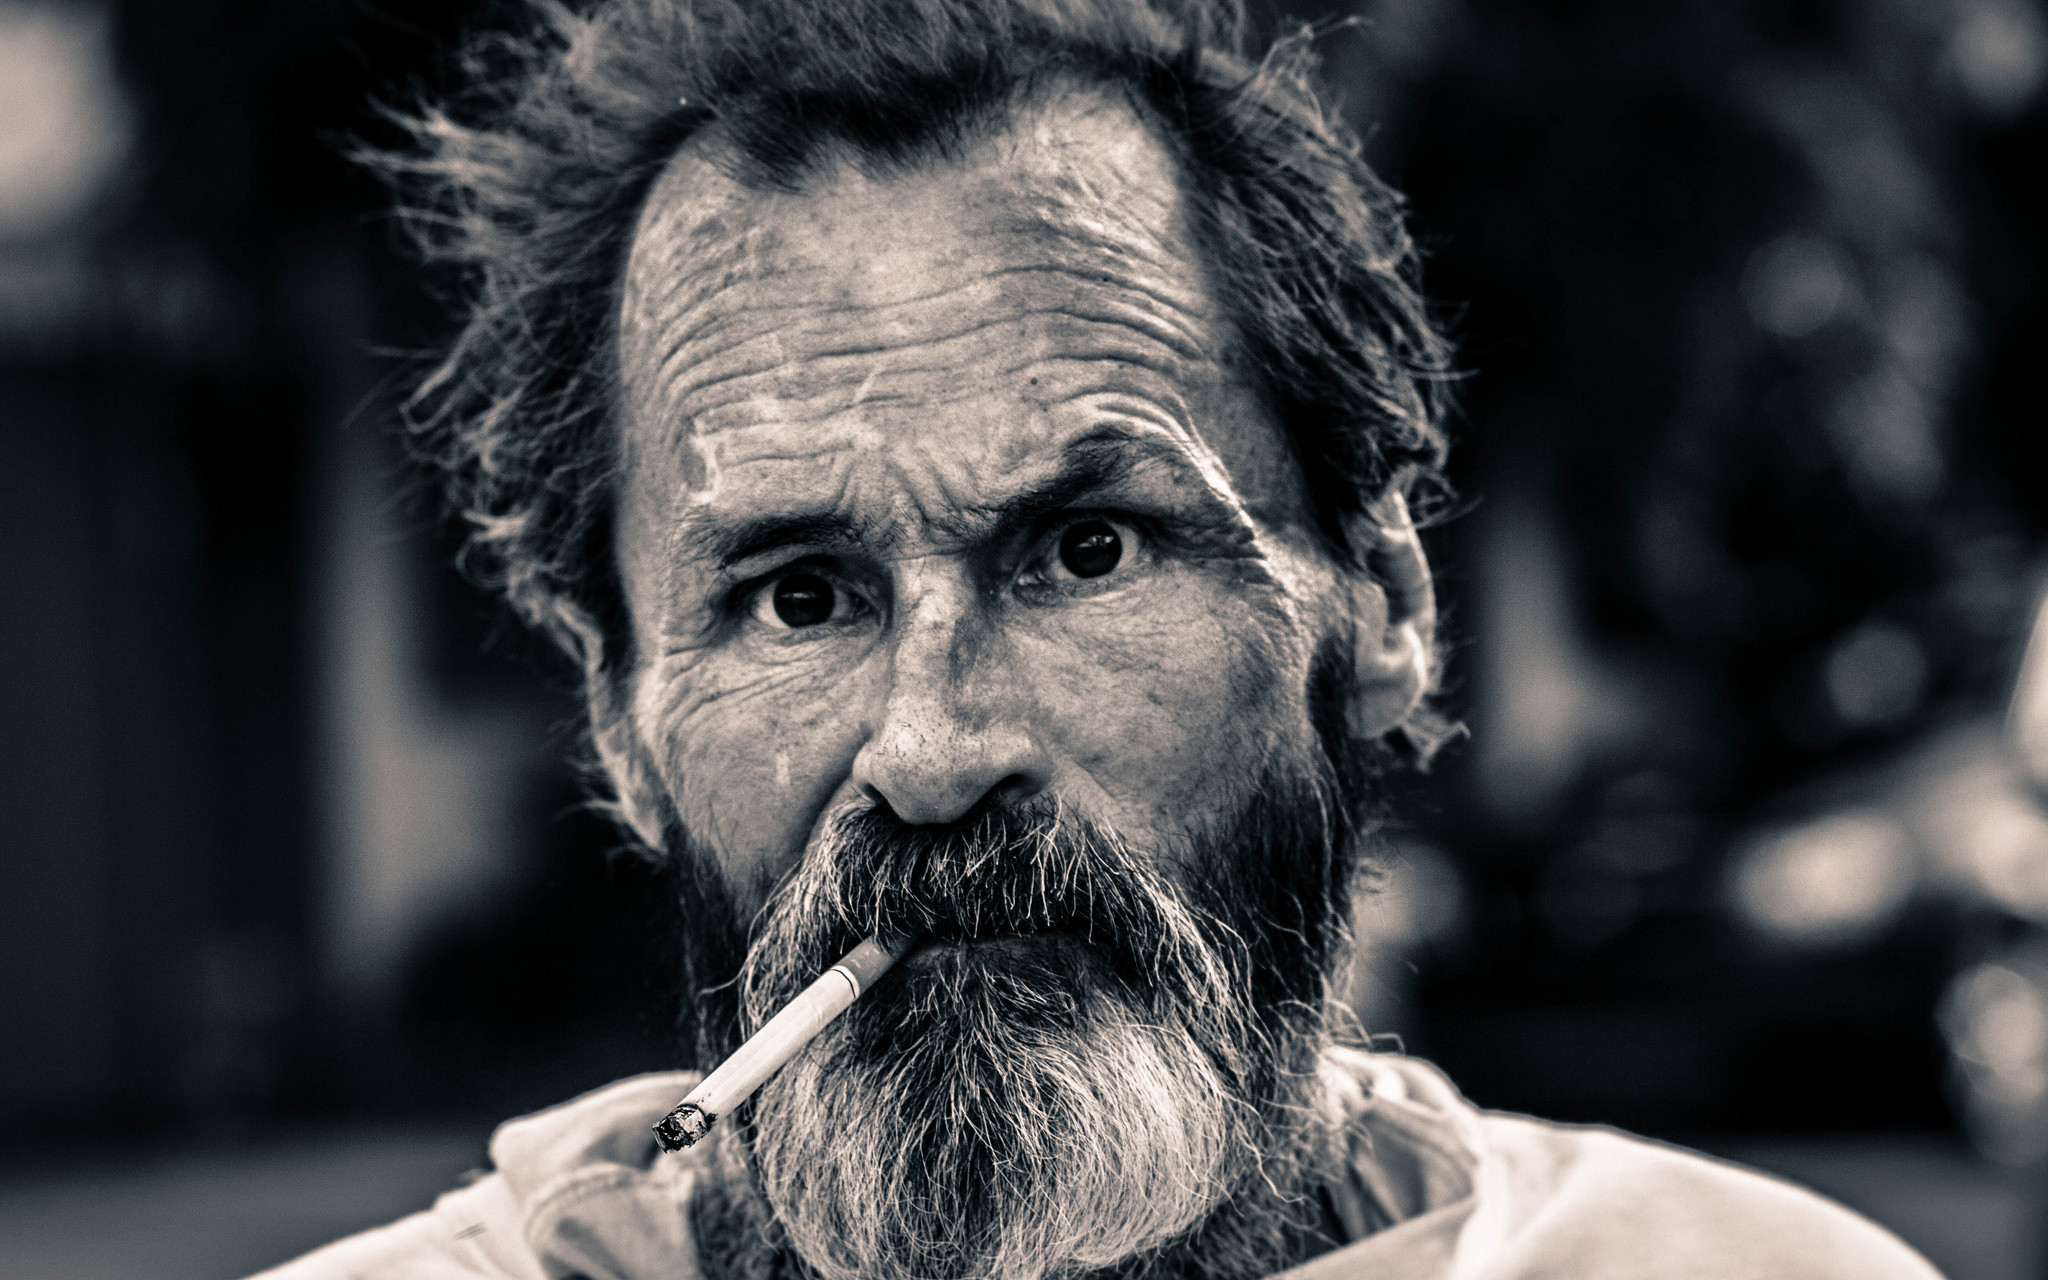 Image: Picture of a homeless man with cigarette in his mouth.